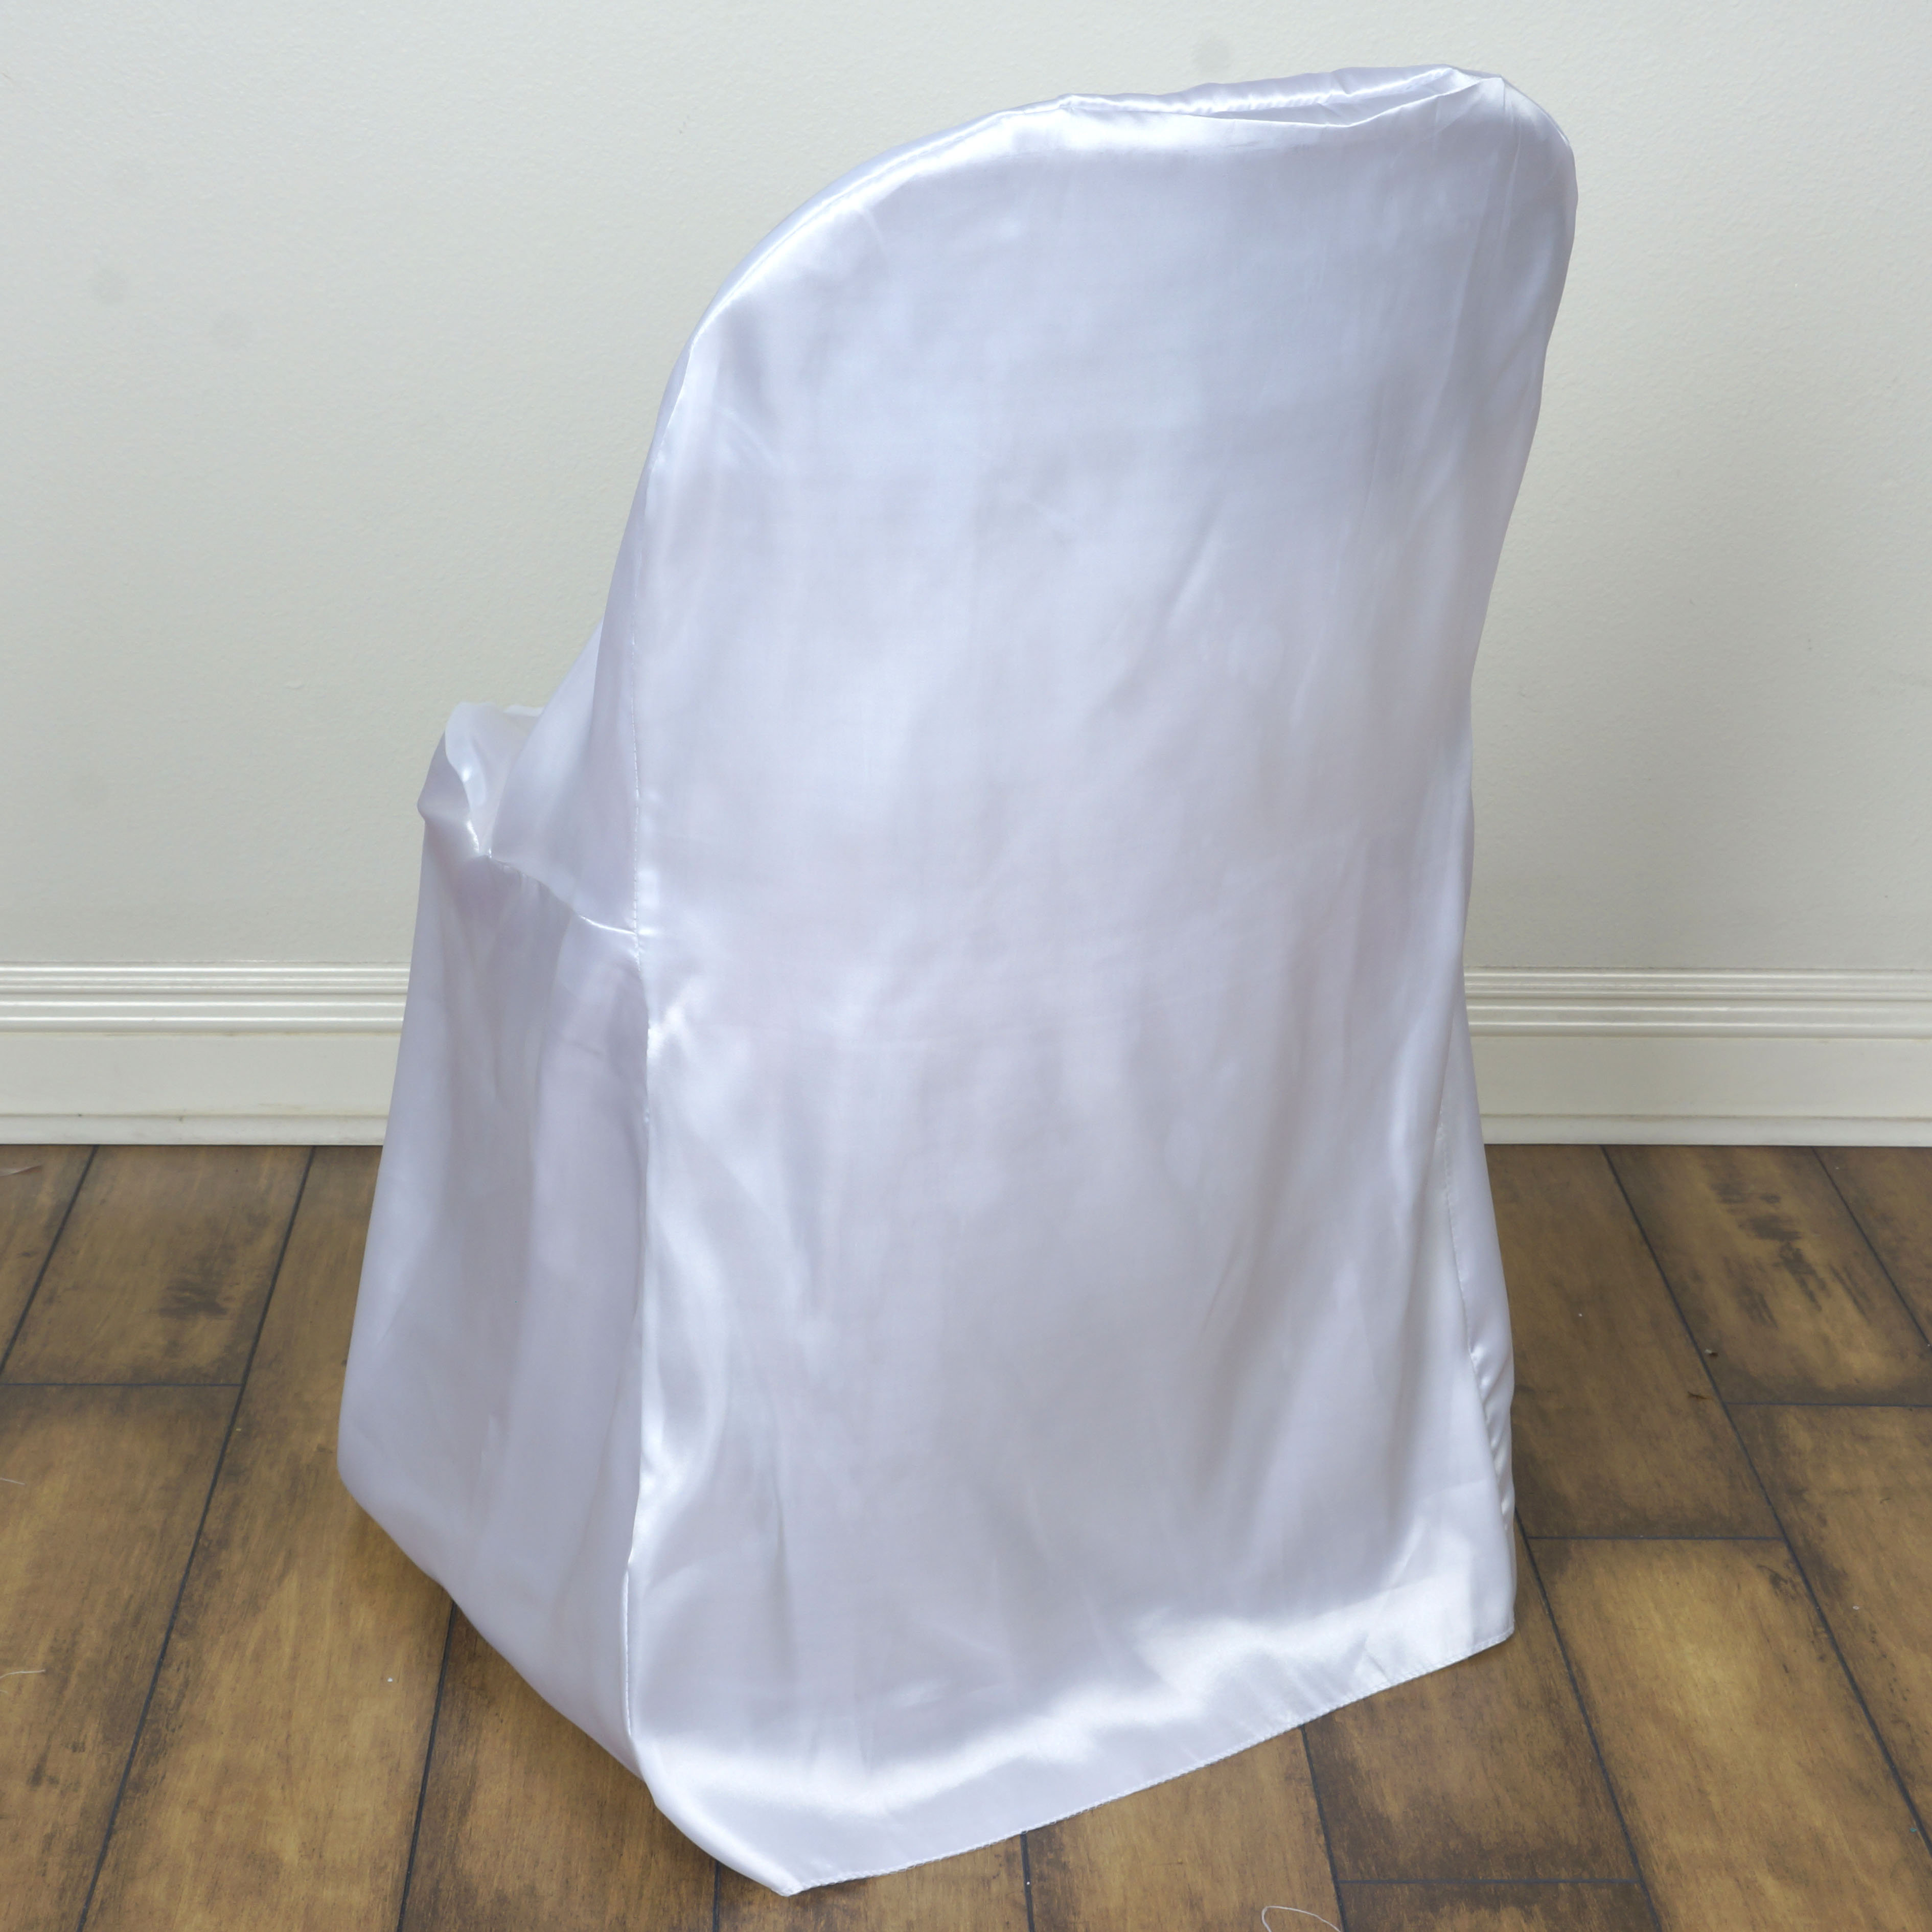 100 Pcs Satin Folding CHAIR COVERS Wedding Catering Party SALE FREE SHIPPIN